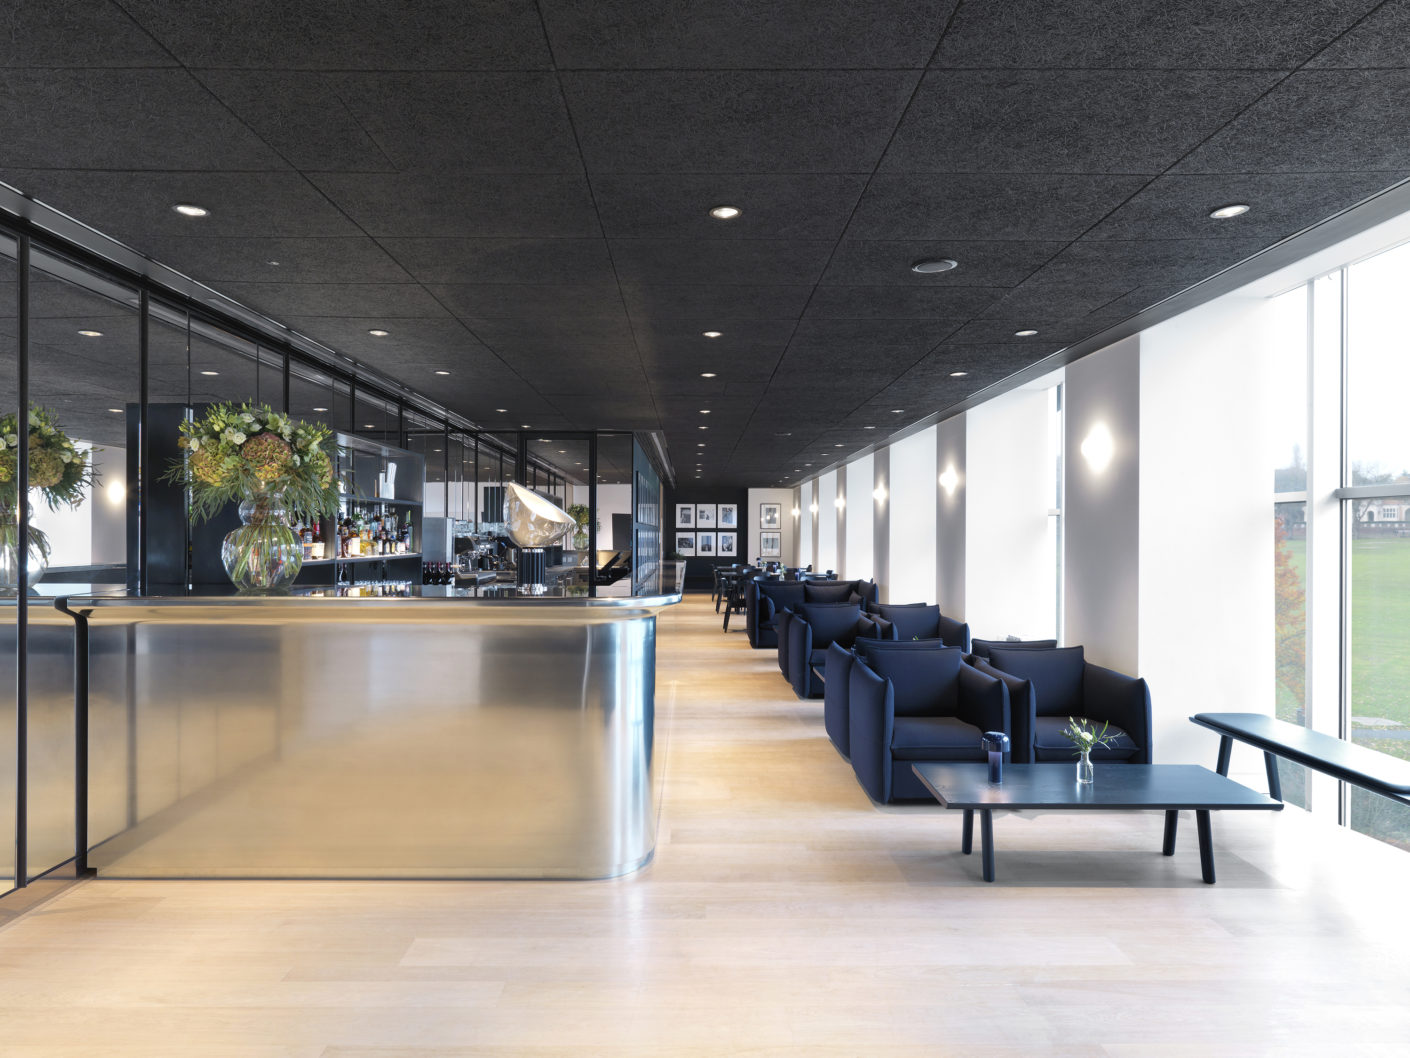 The restaurant area of the Design Museum London, designed by the Rotterdam architect's office OMA.